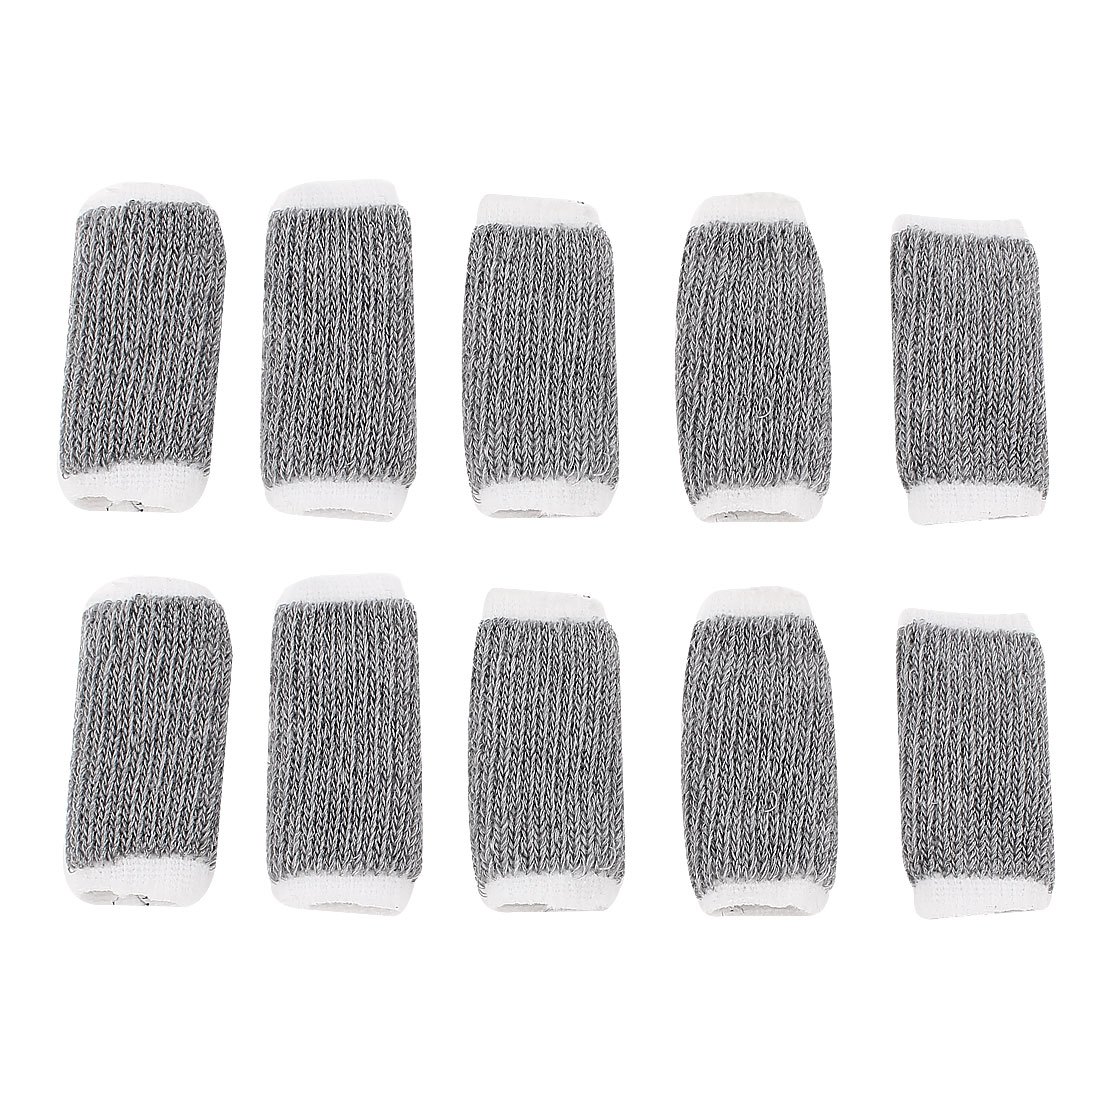 Sports Finger Sleeve Elastic Protector 10pcs Gray